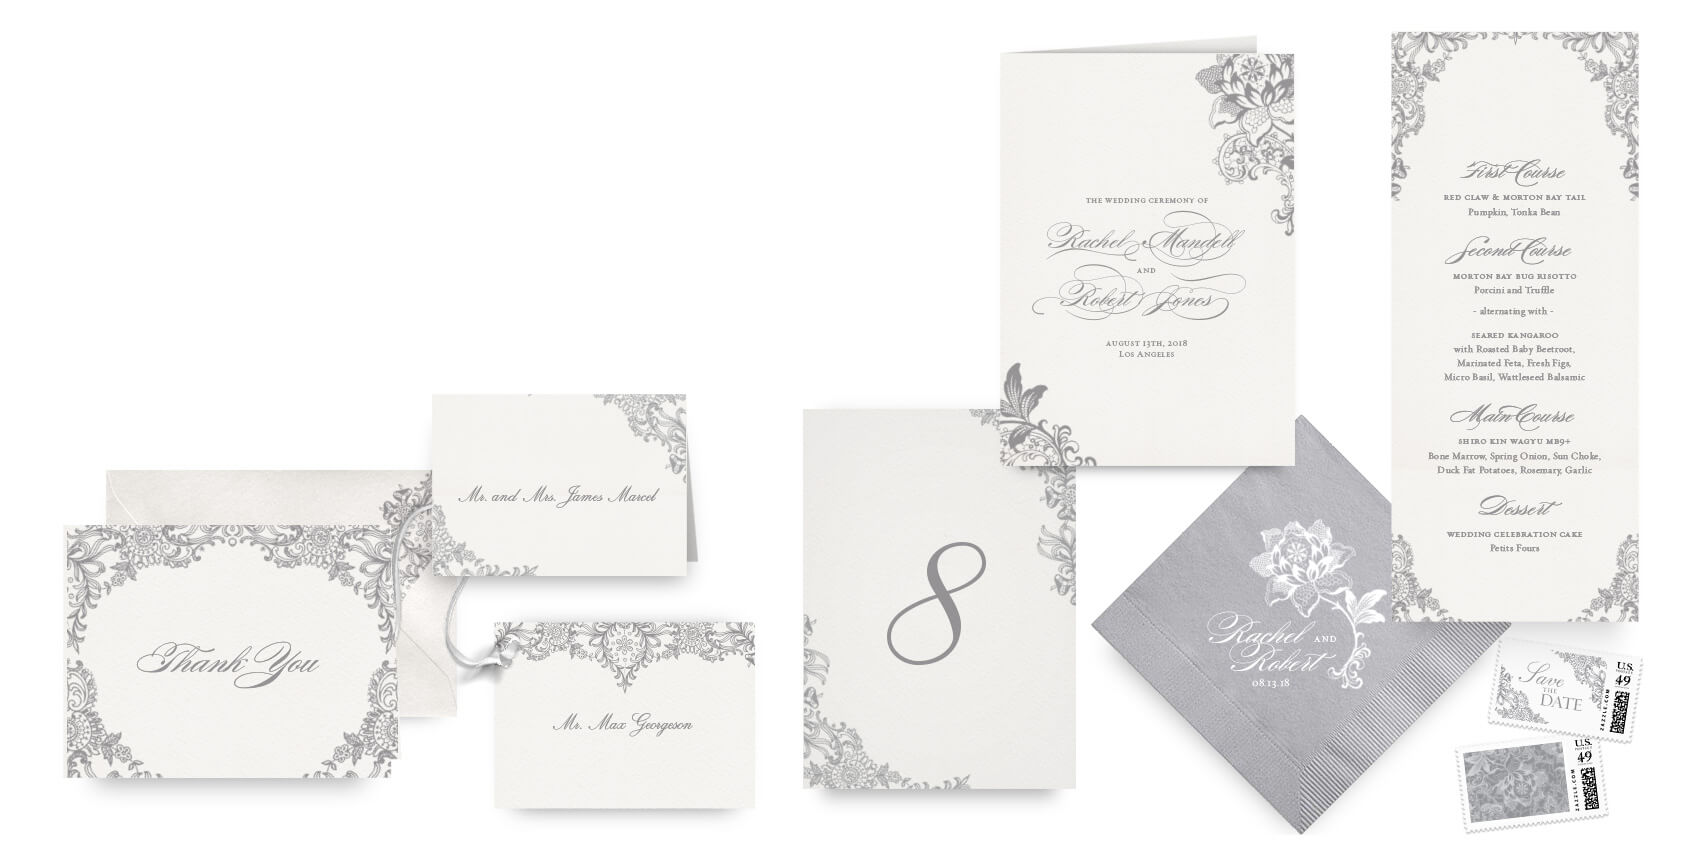 Grey lace menus, programs and wedding accessories